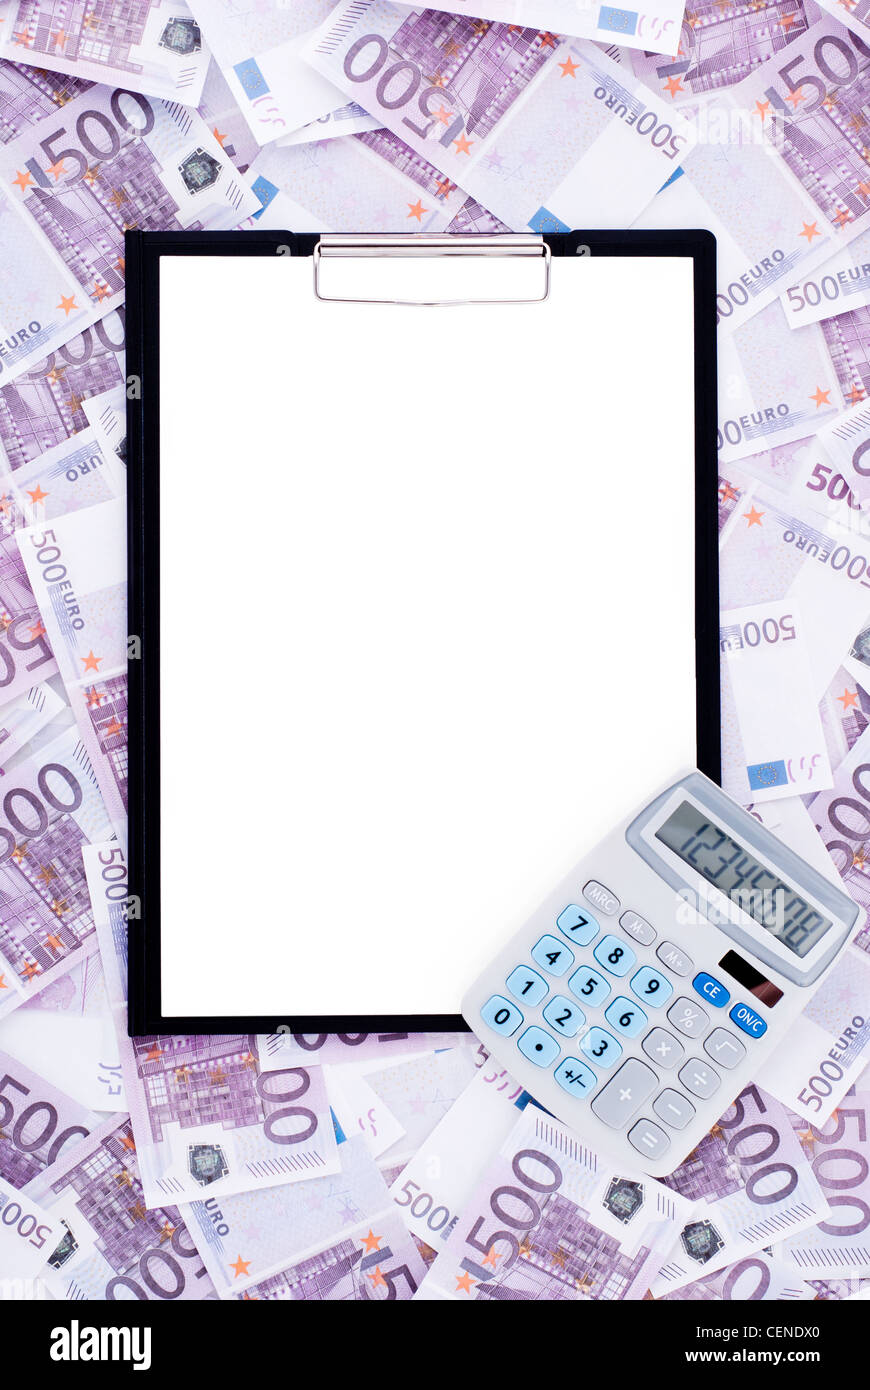 Clipboard and calculator surrounded by money - Stock Image